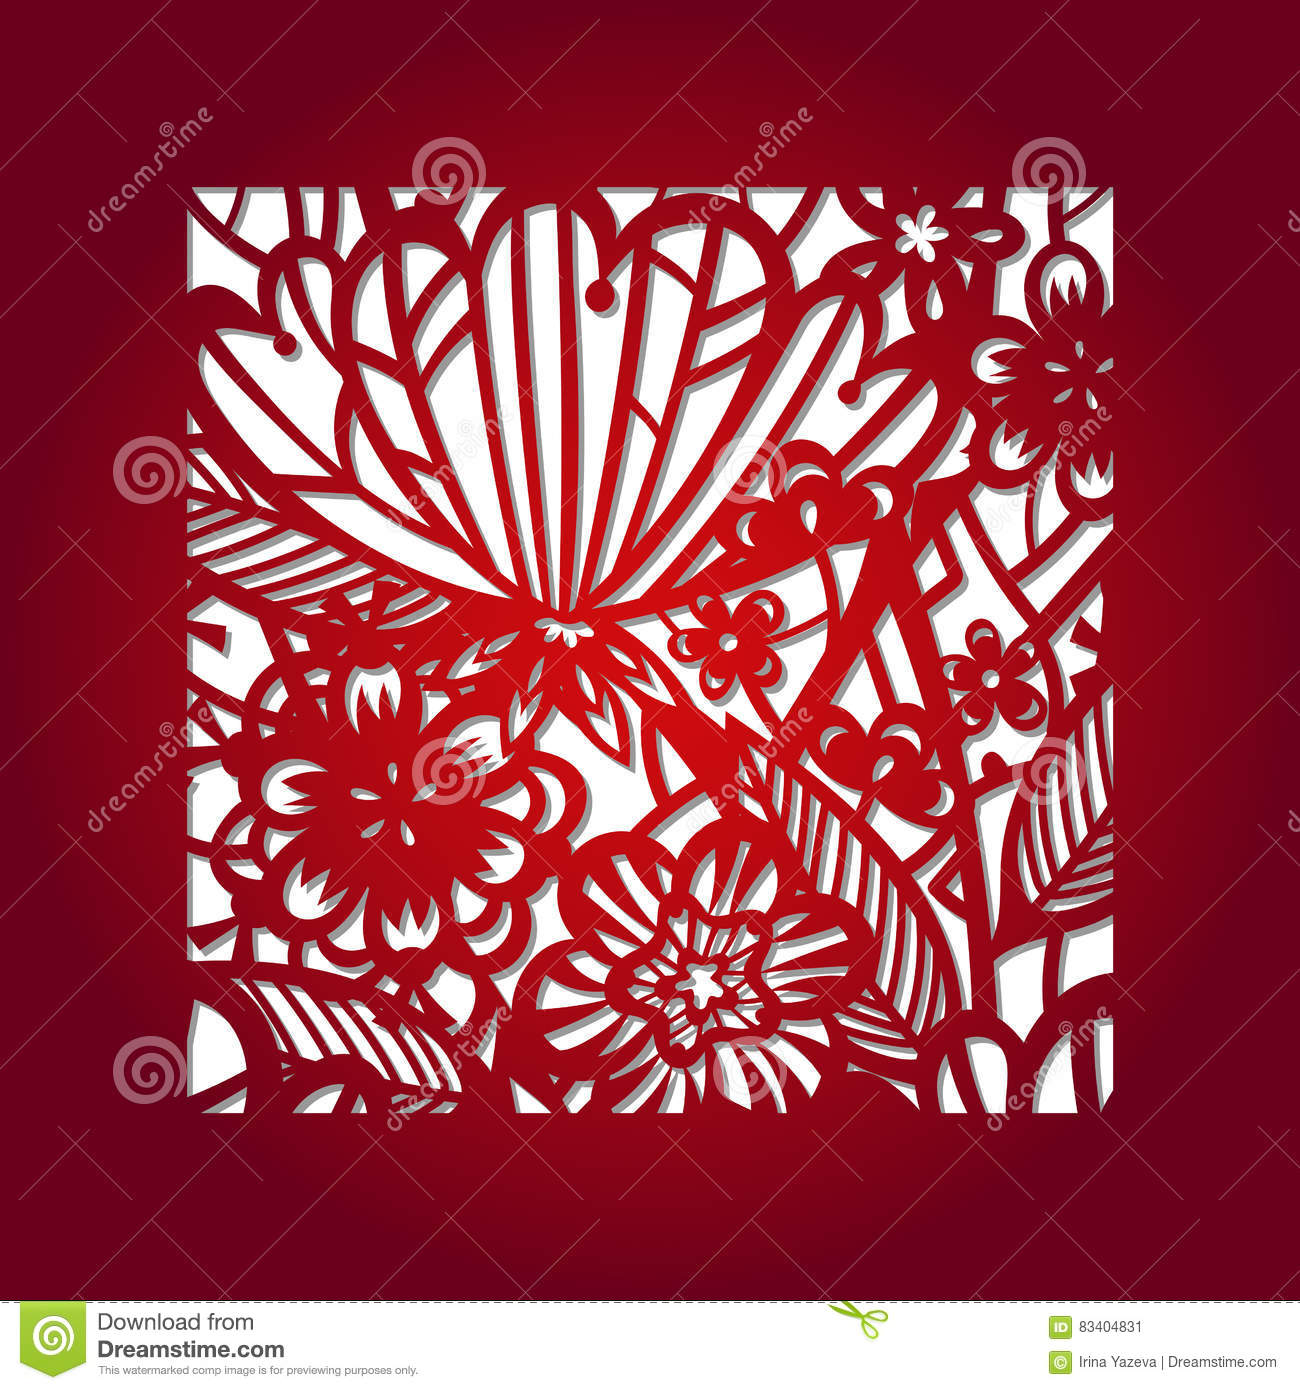 Laser cut vector template stock vector. Illustration of ...